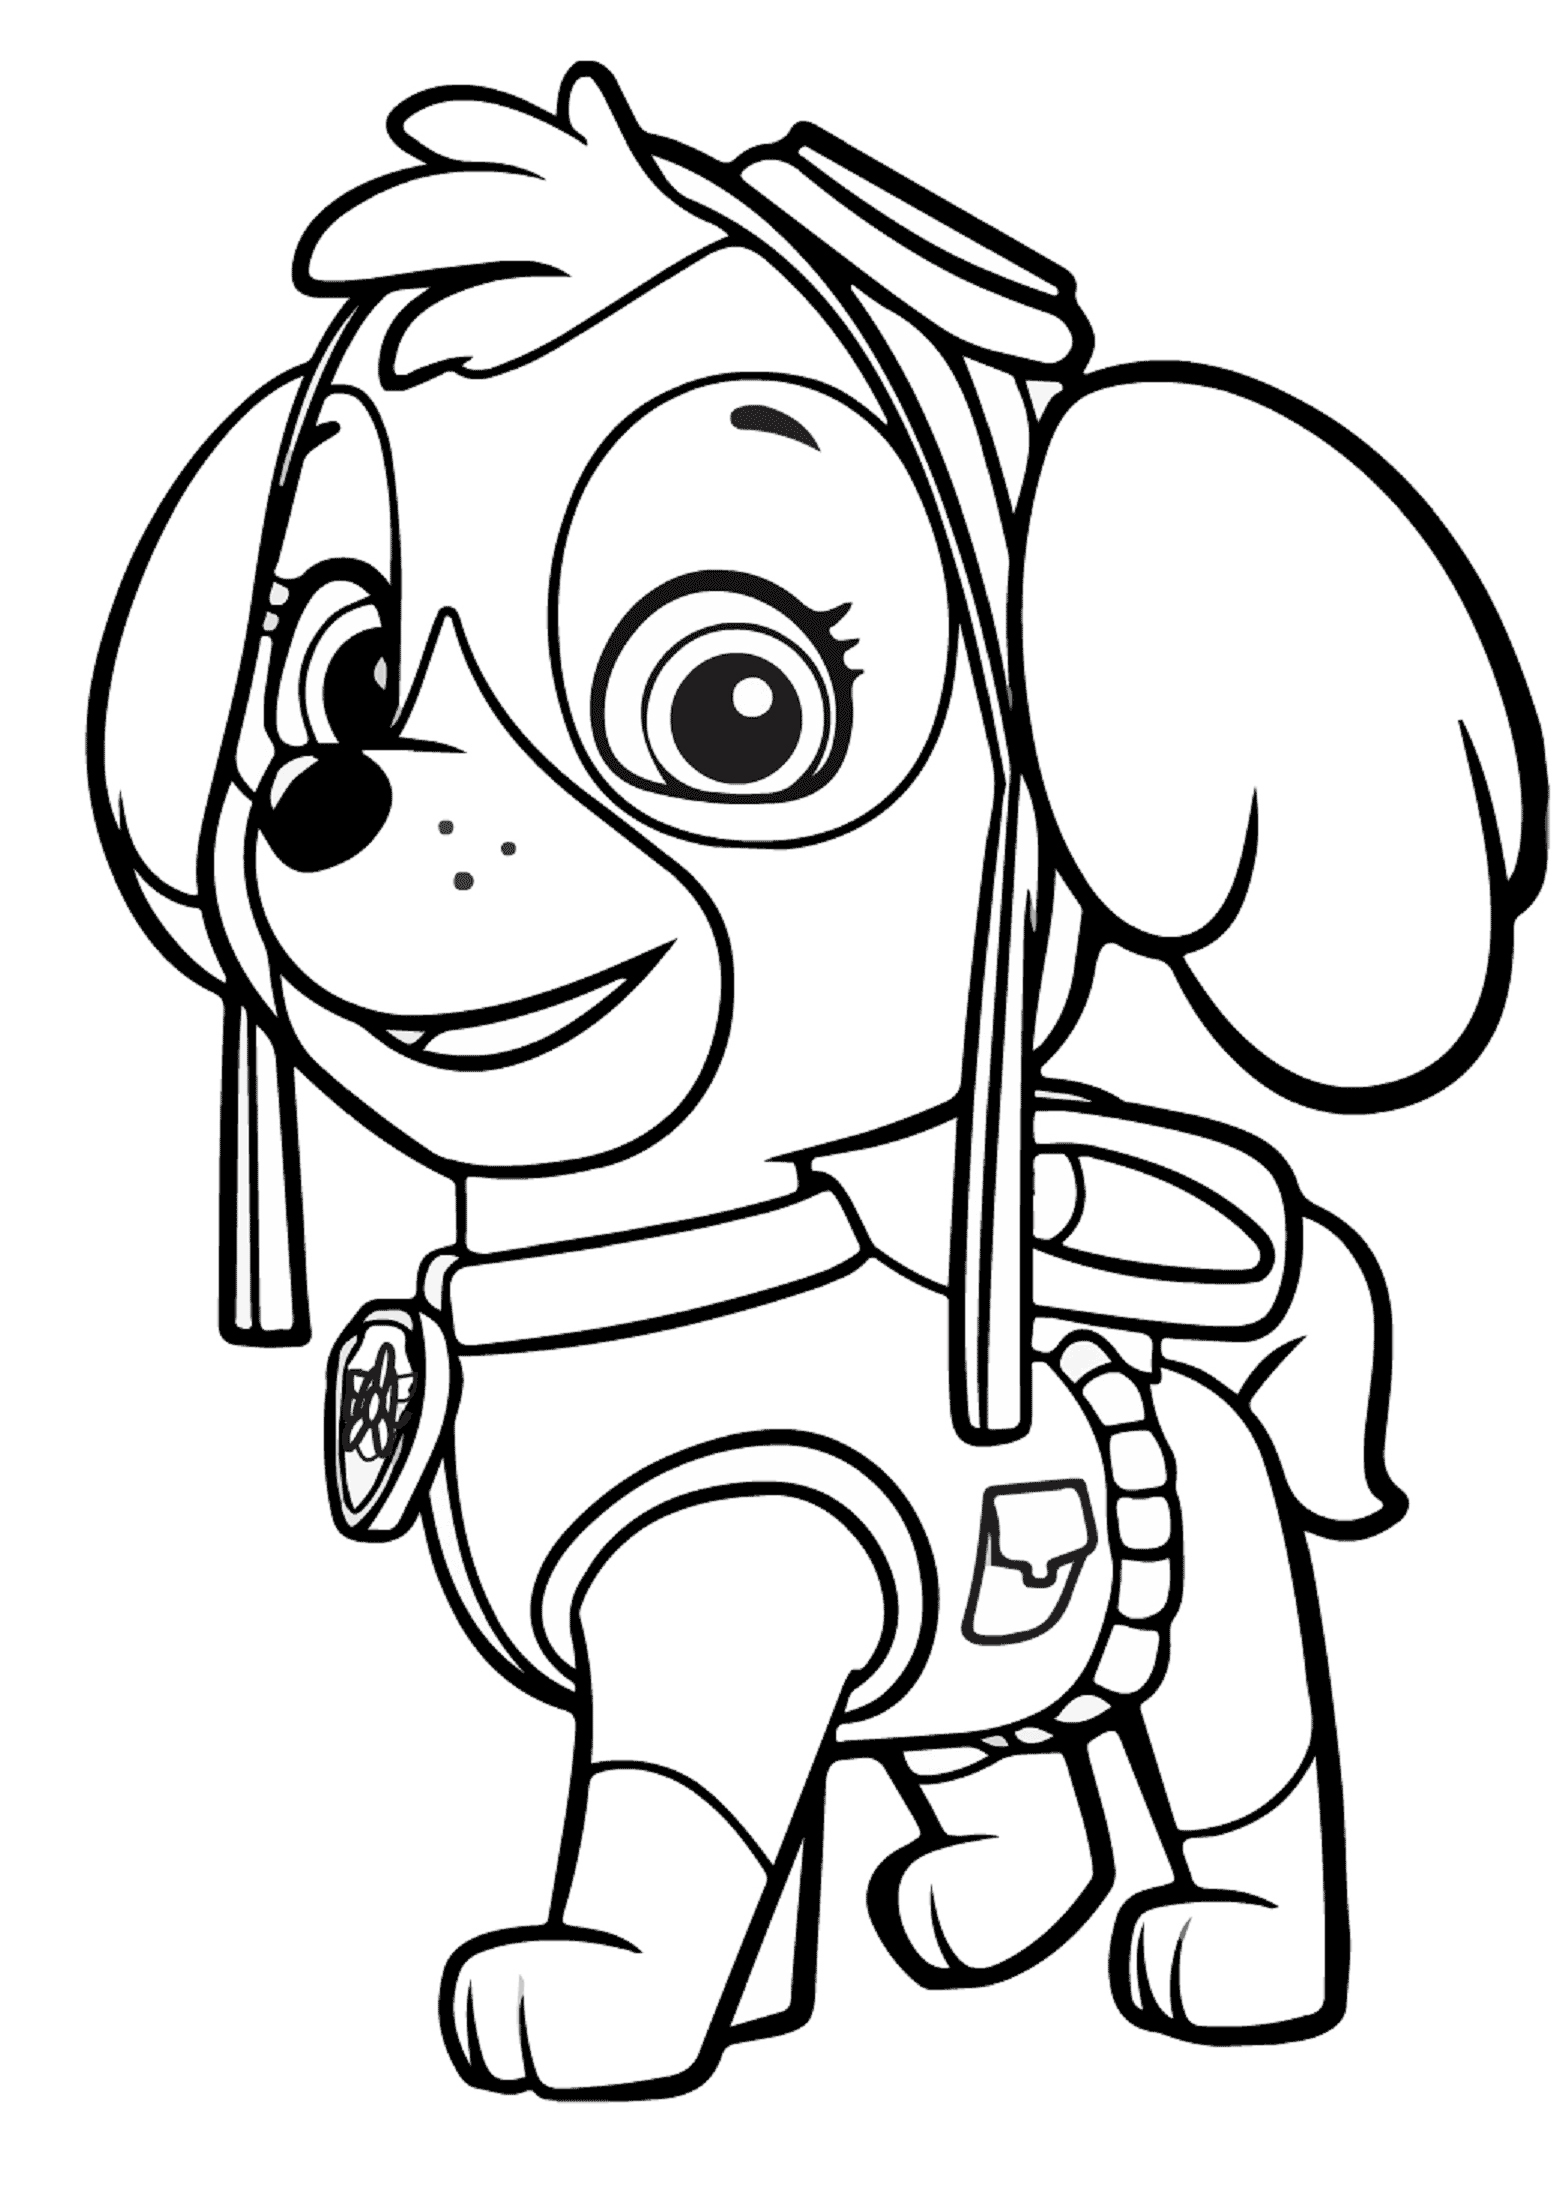 e30613 coloring pages - photo#23